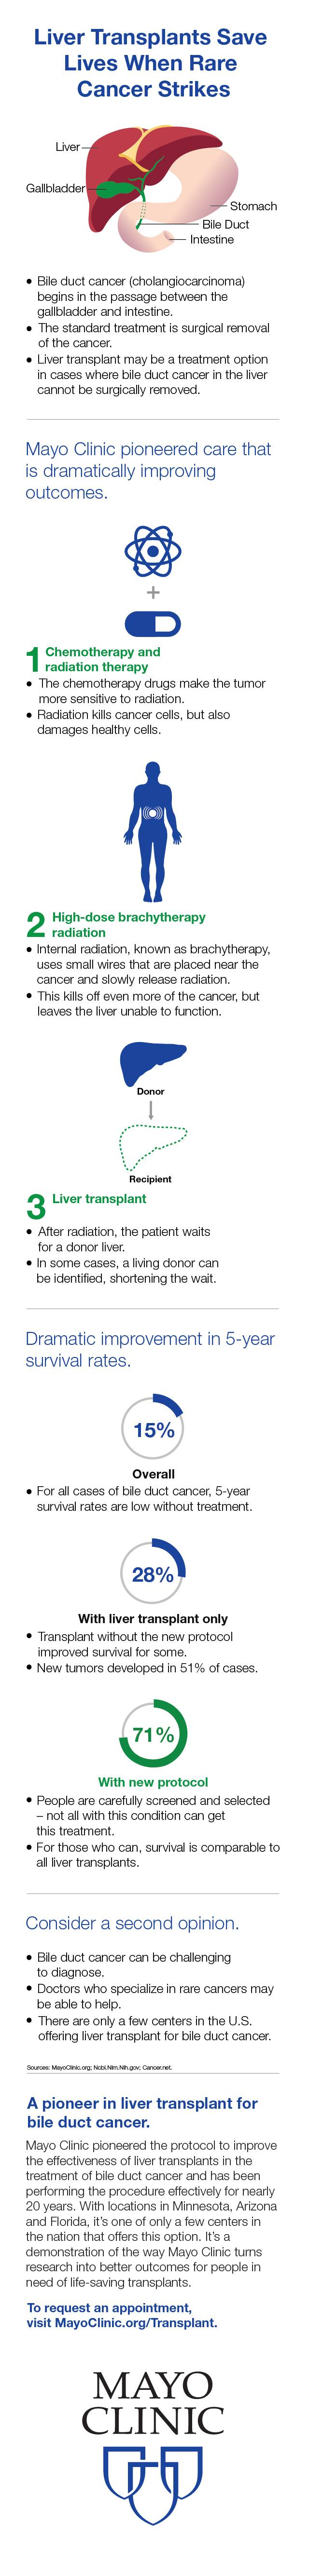 Infographic image about liver transplants and bile duct cancer